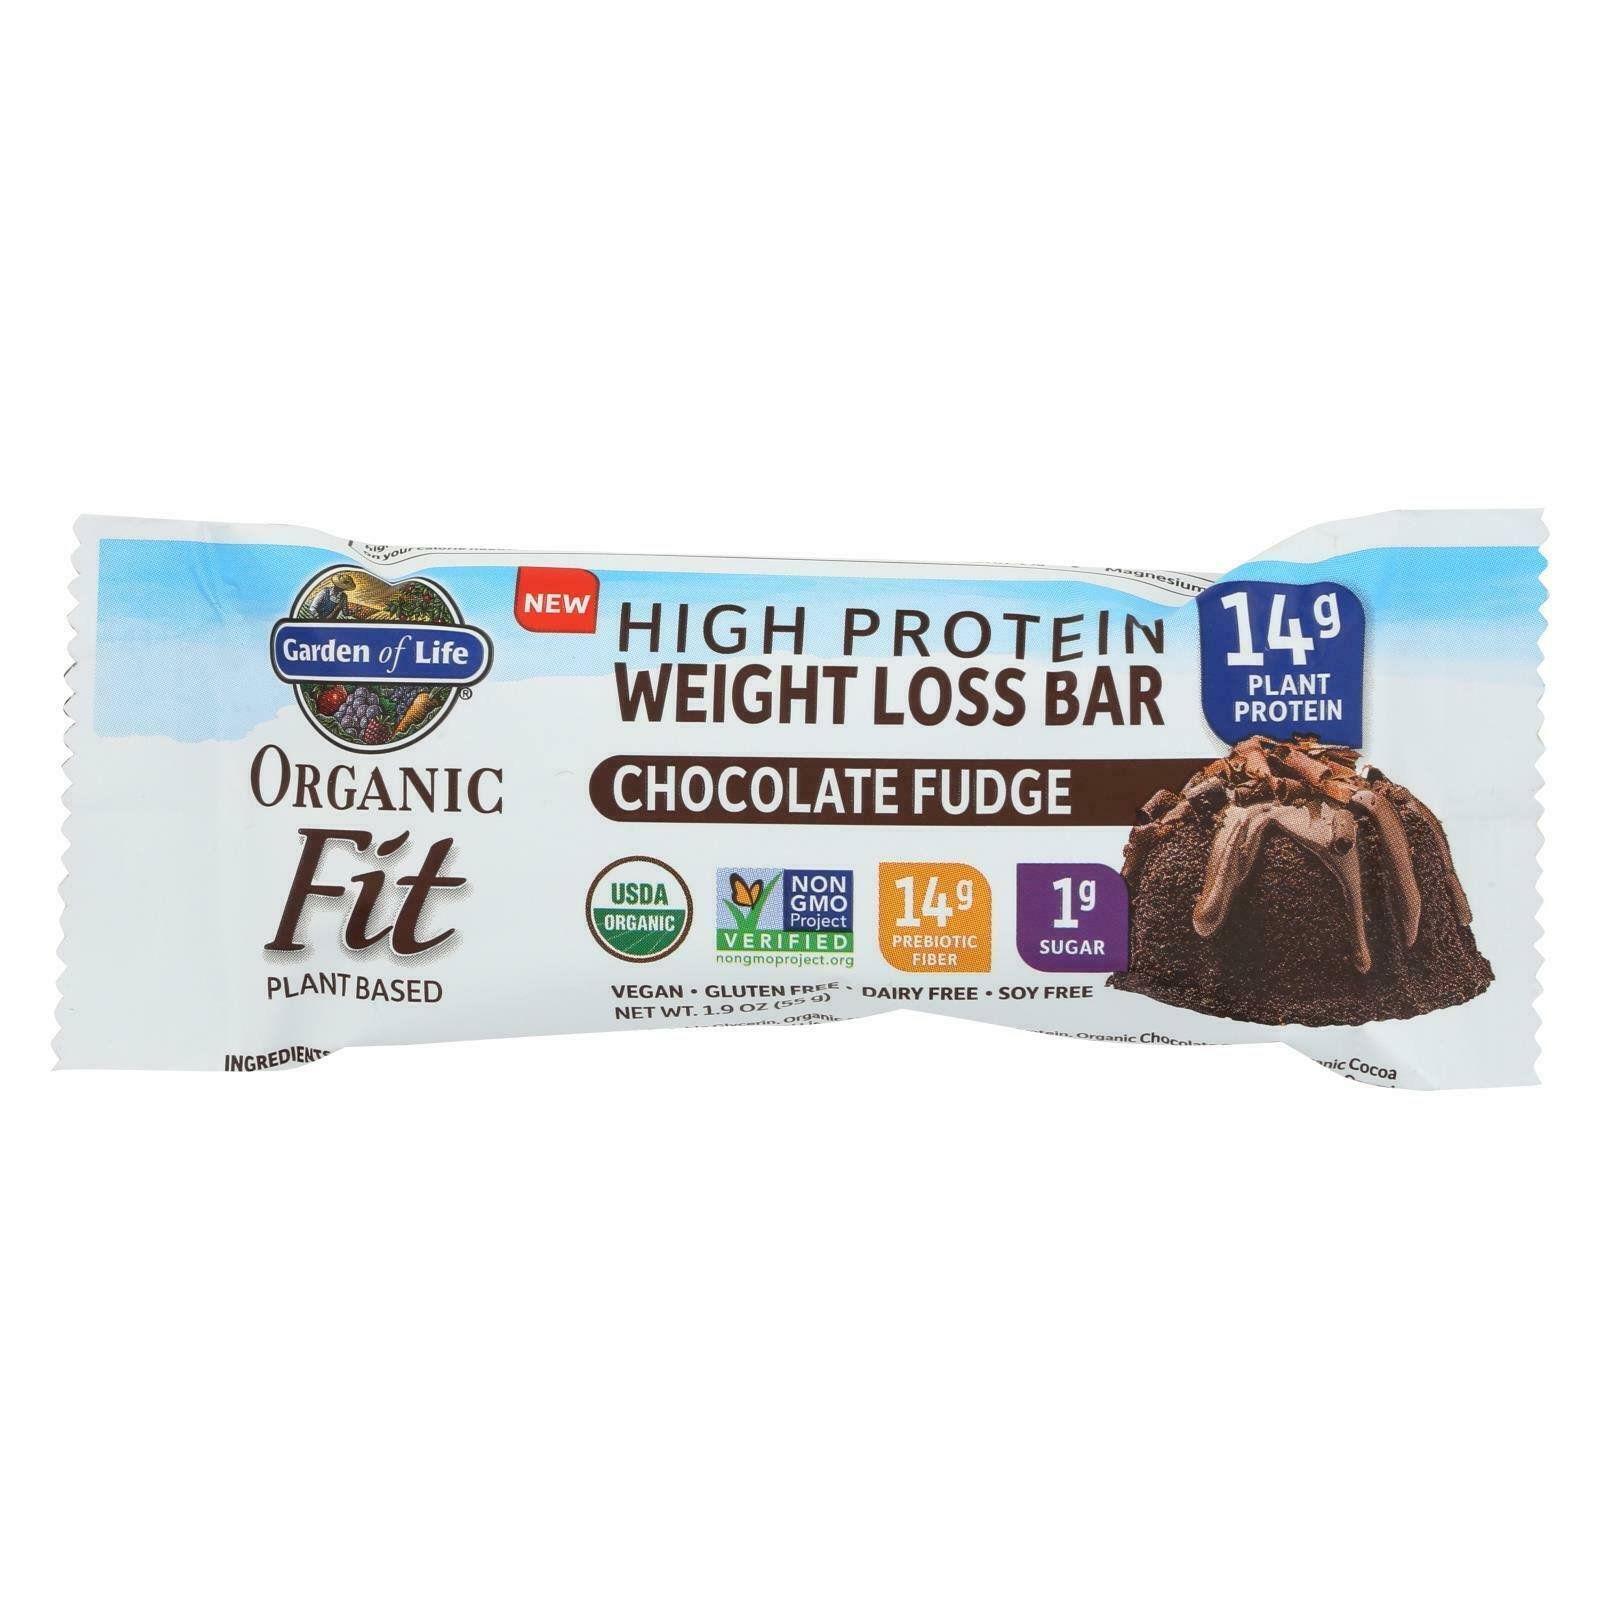 Garden of Life Organic Fit High Protein Weight Loss Bar - Chocolate Fudge, 1.9oz